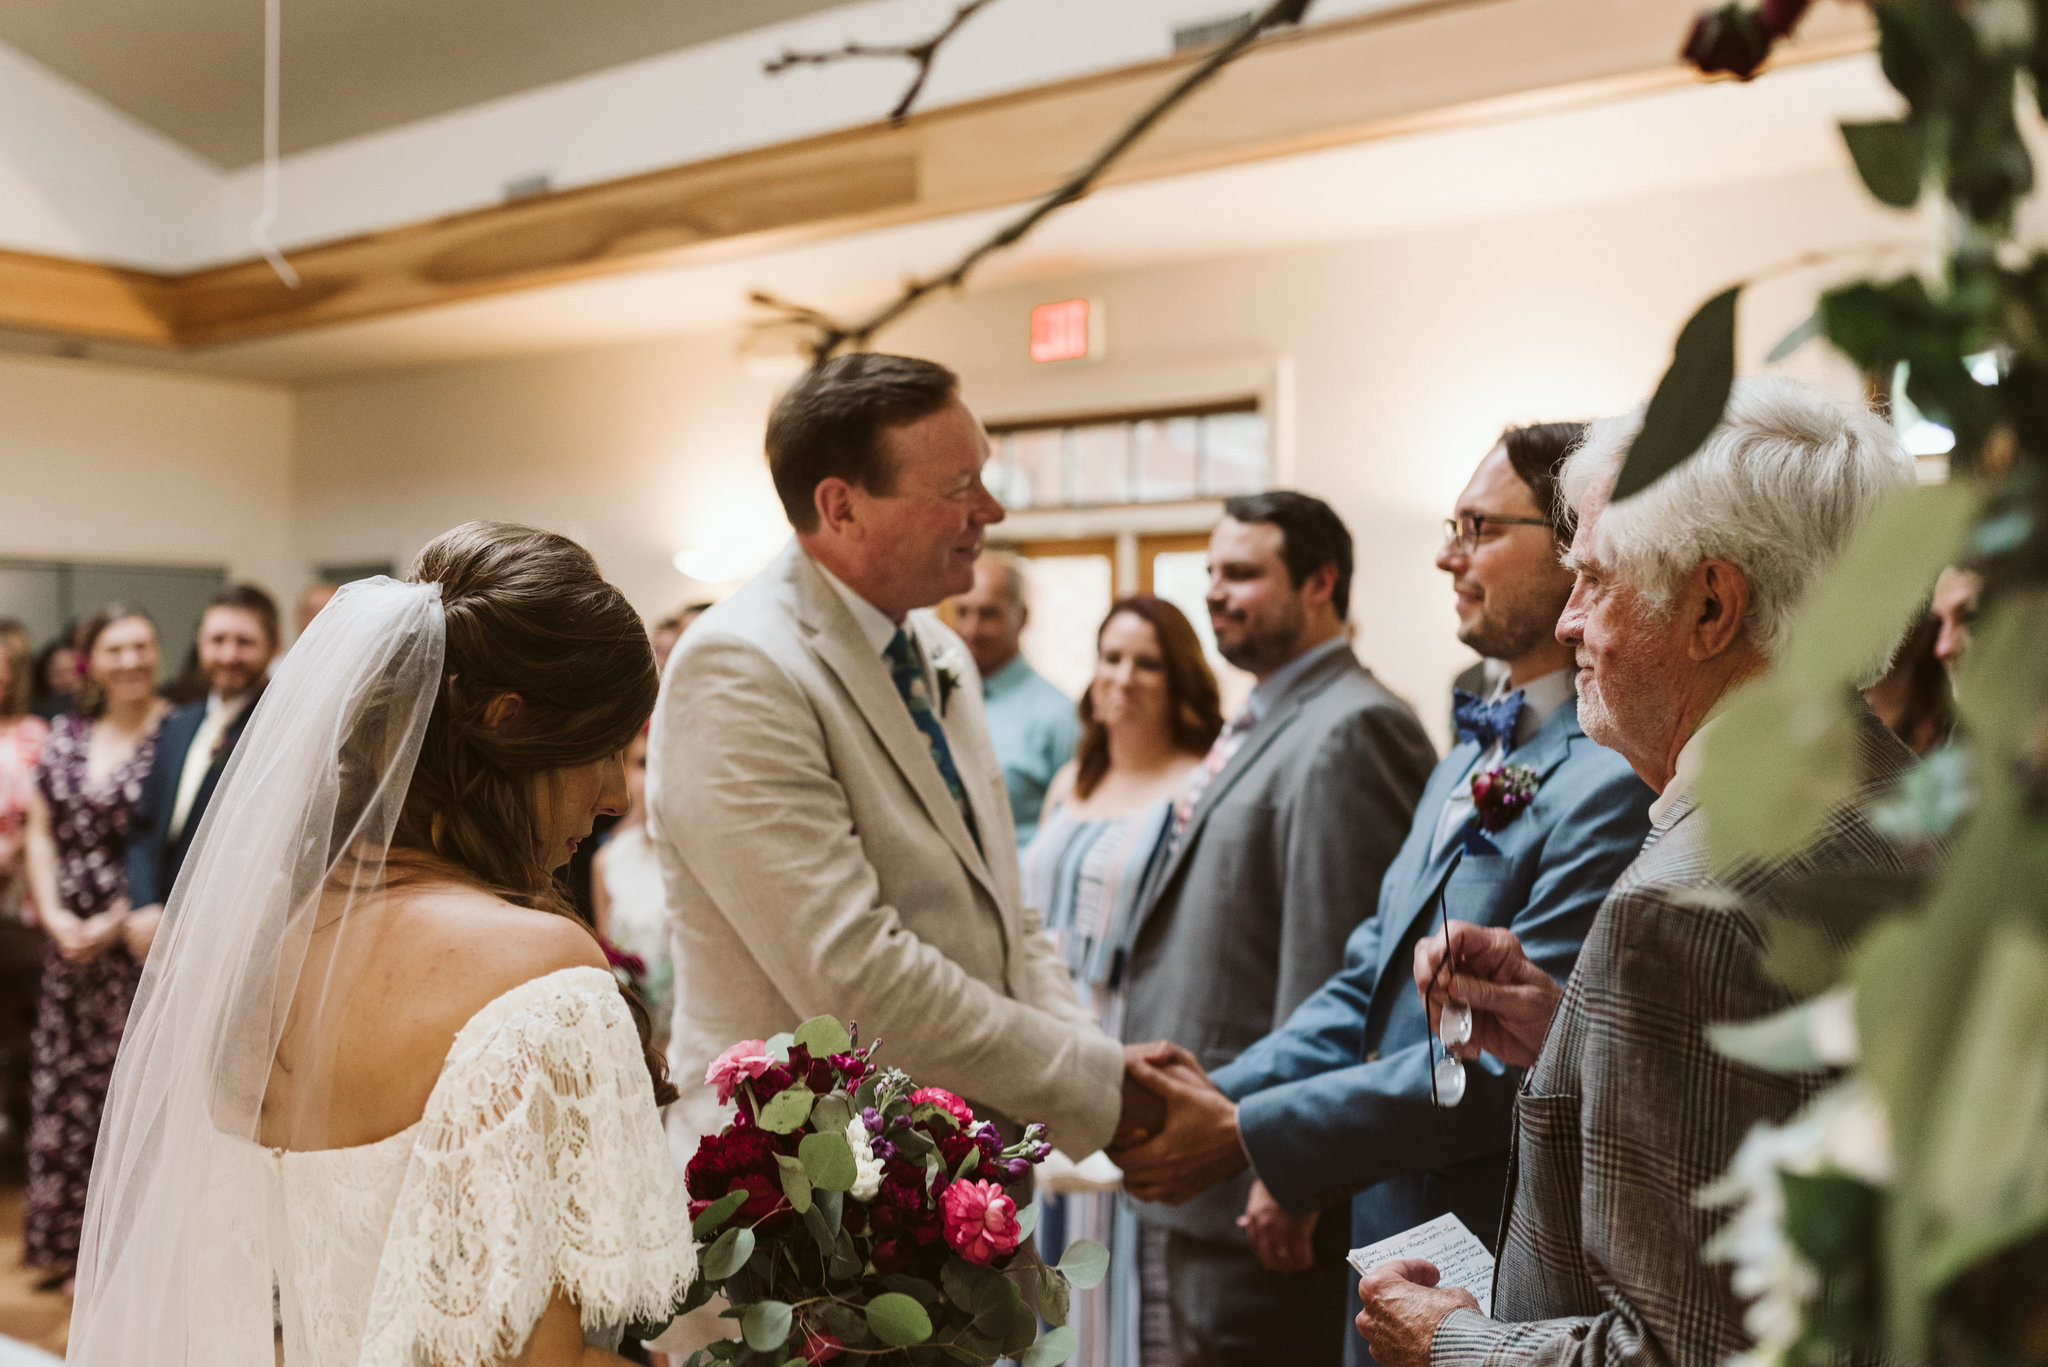 Annapolis, Quaker Wedding, Baltimore Wedding Photographer, Intimate, Small Wedding, Vintage, DIY, Father of the Bride Shaking Groom's Hand